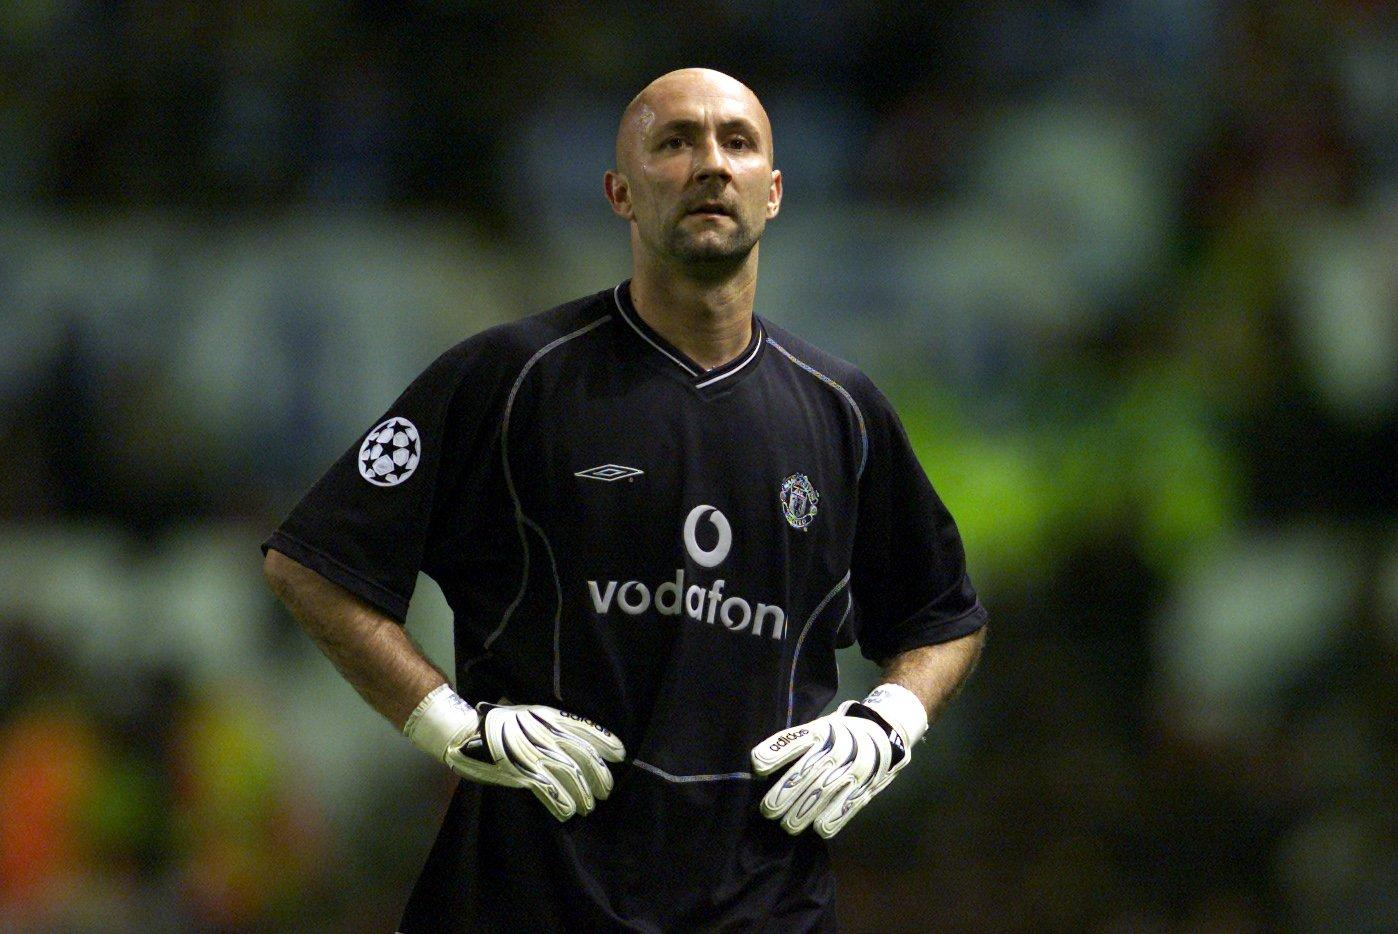 The real Barthez. Not to be confused with the lookalike from earlier